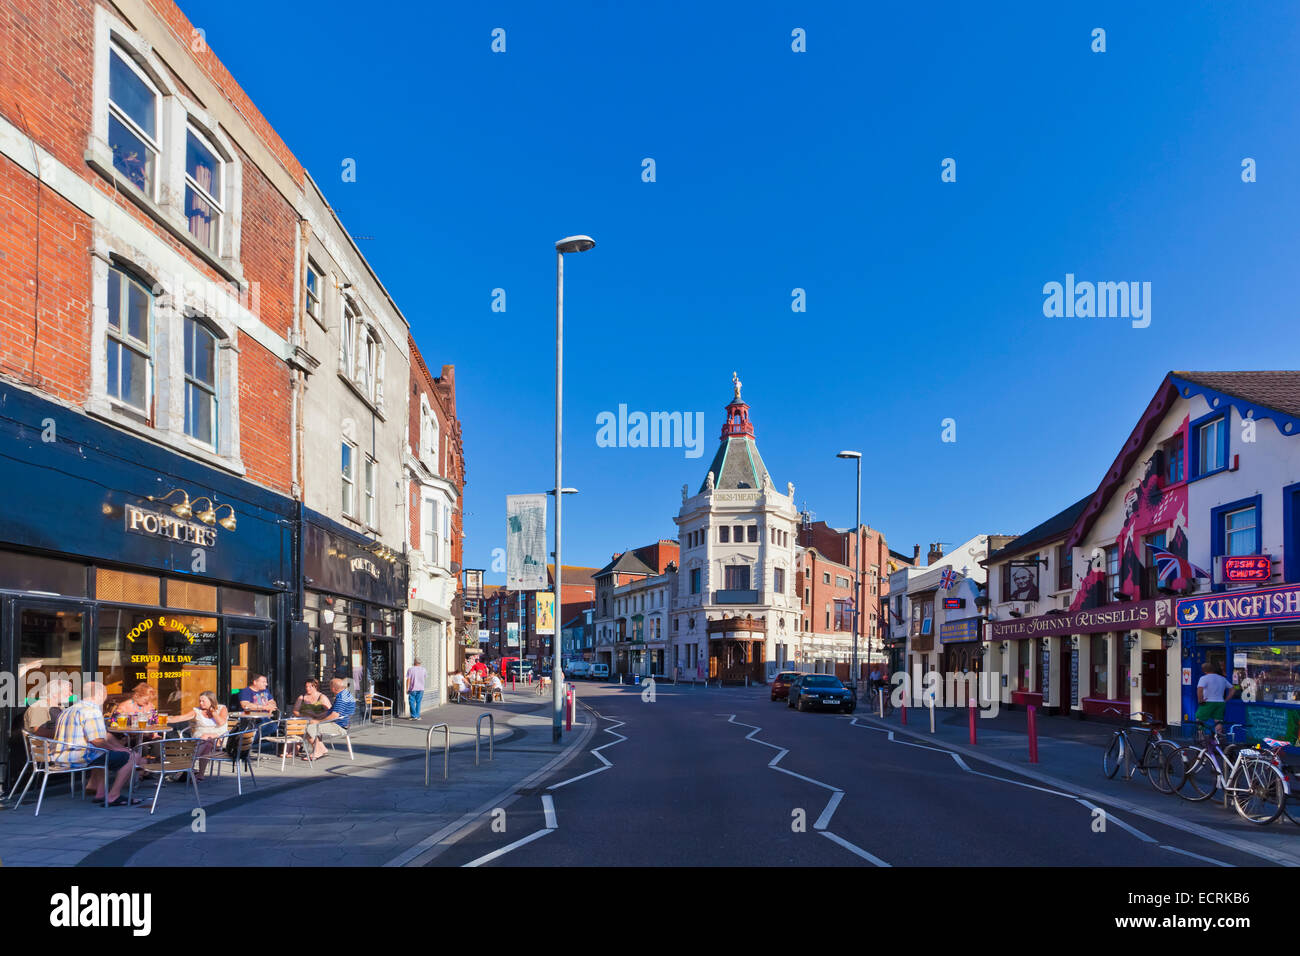 SHOPS AND PUBS AT ALBERT ROAD, SOUTHSEA QUARTER, PORTSMOUTH, HAMPSHIRE, ENGLAND, GREAT BRITAIN - Stock Image